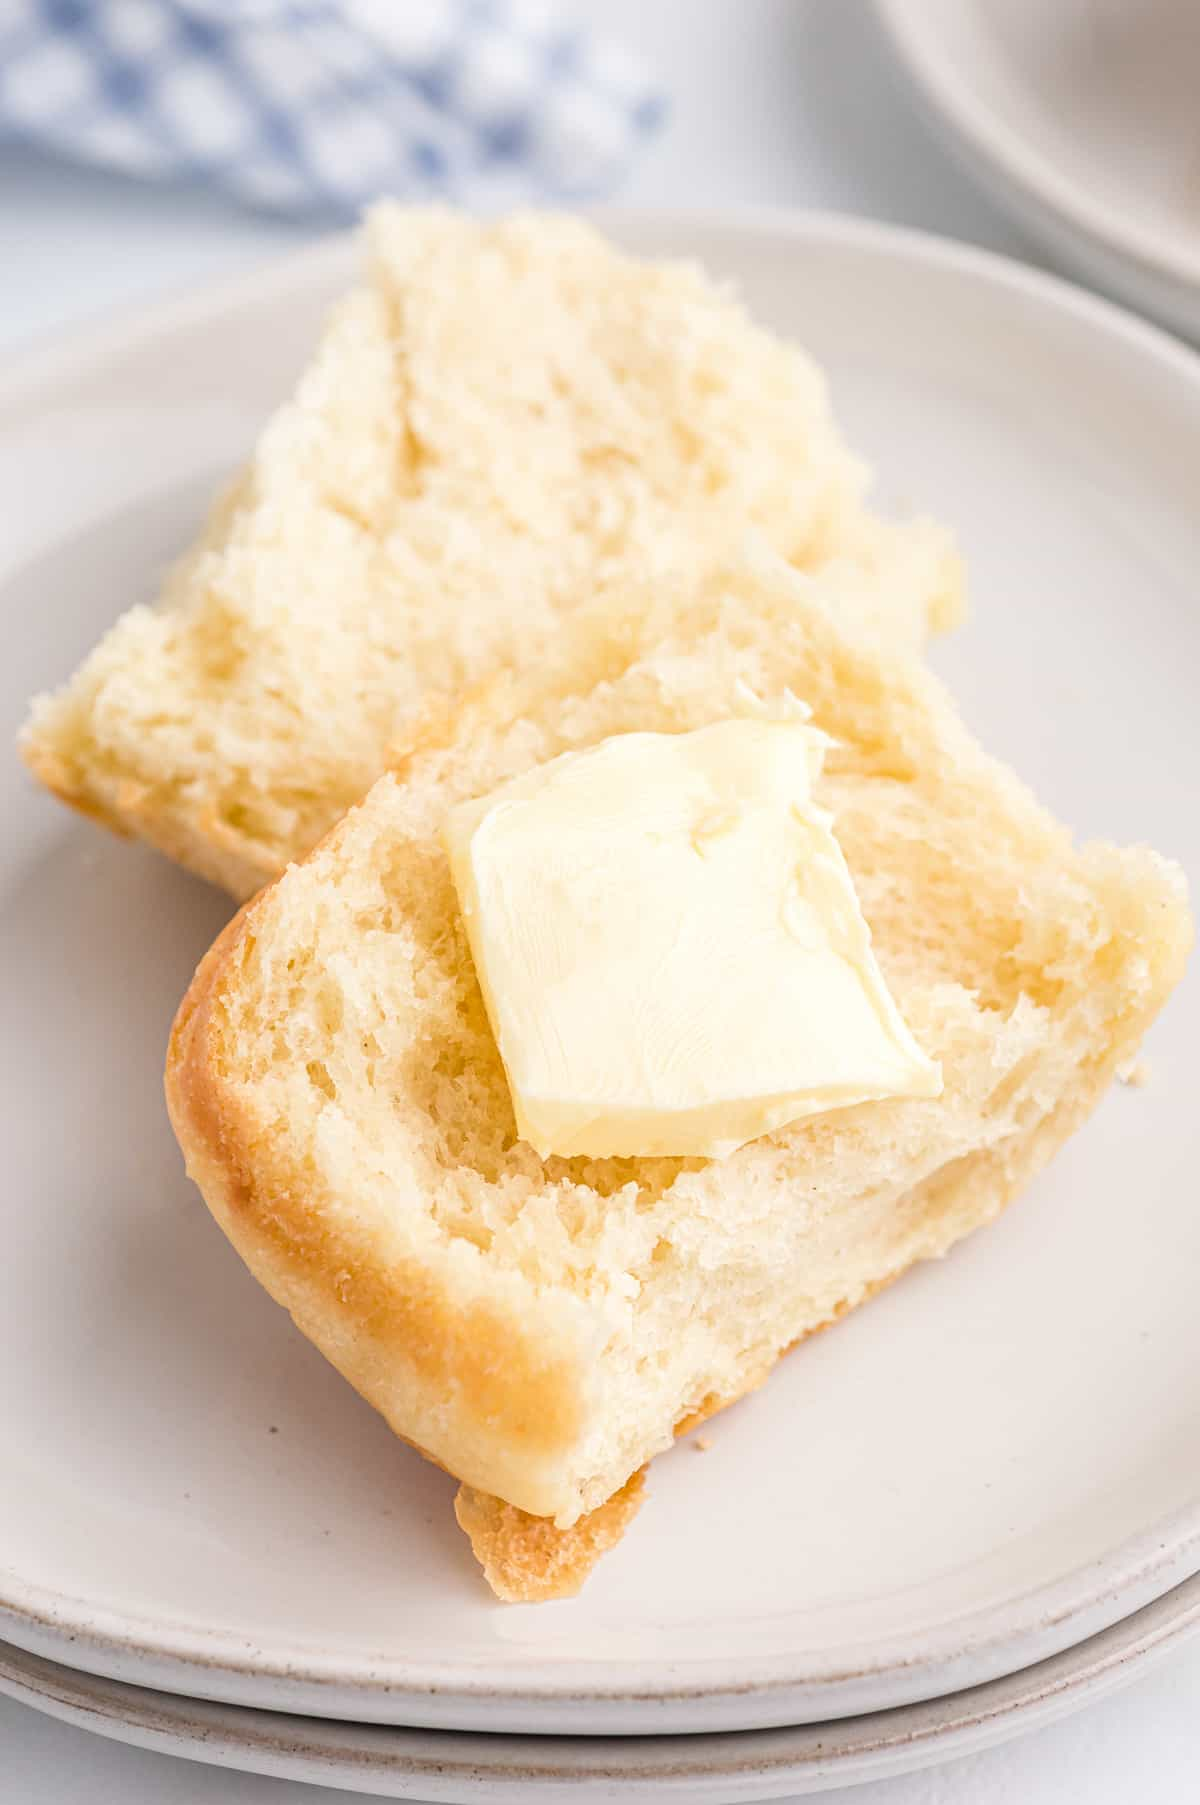 Fluffy potato roll cut in half with a pat of butter on it